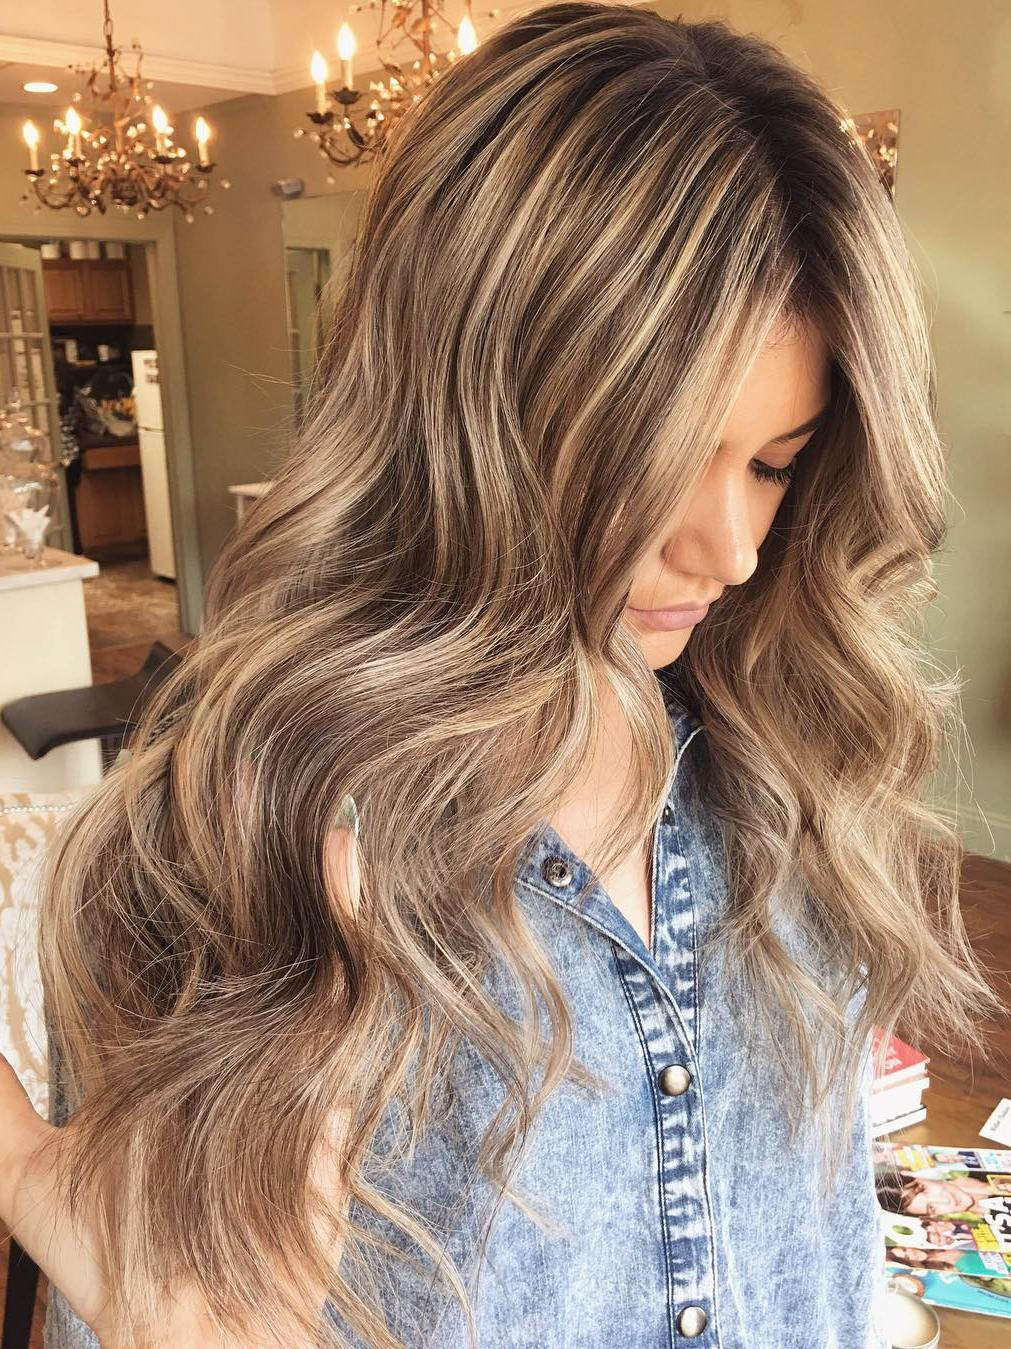 Long Brown Hair With Blonde Highlights & 50 Light Brown Hair Color Ideas with Highlights and Lowlights